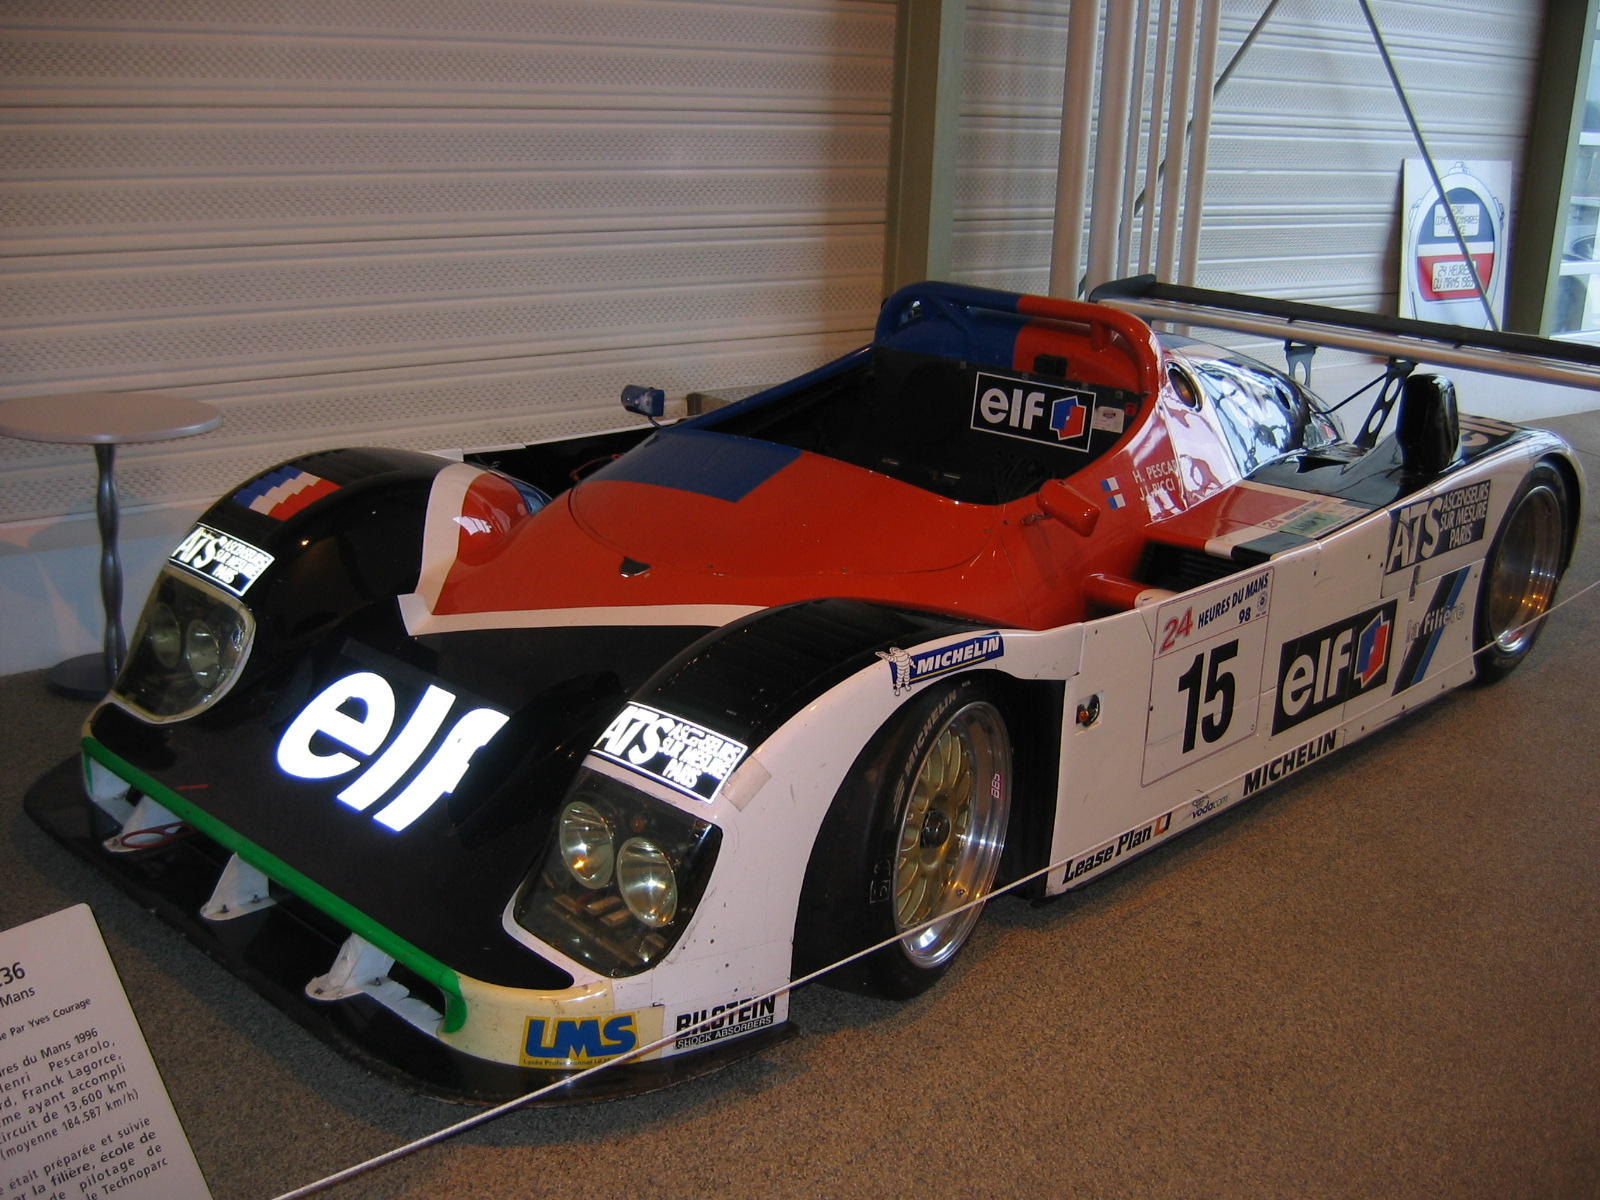 Courage C36, Pescarolo/Mantagny/Grouillard von 1998